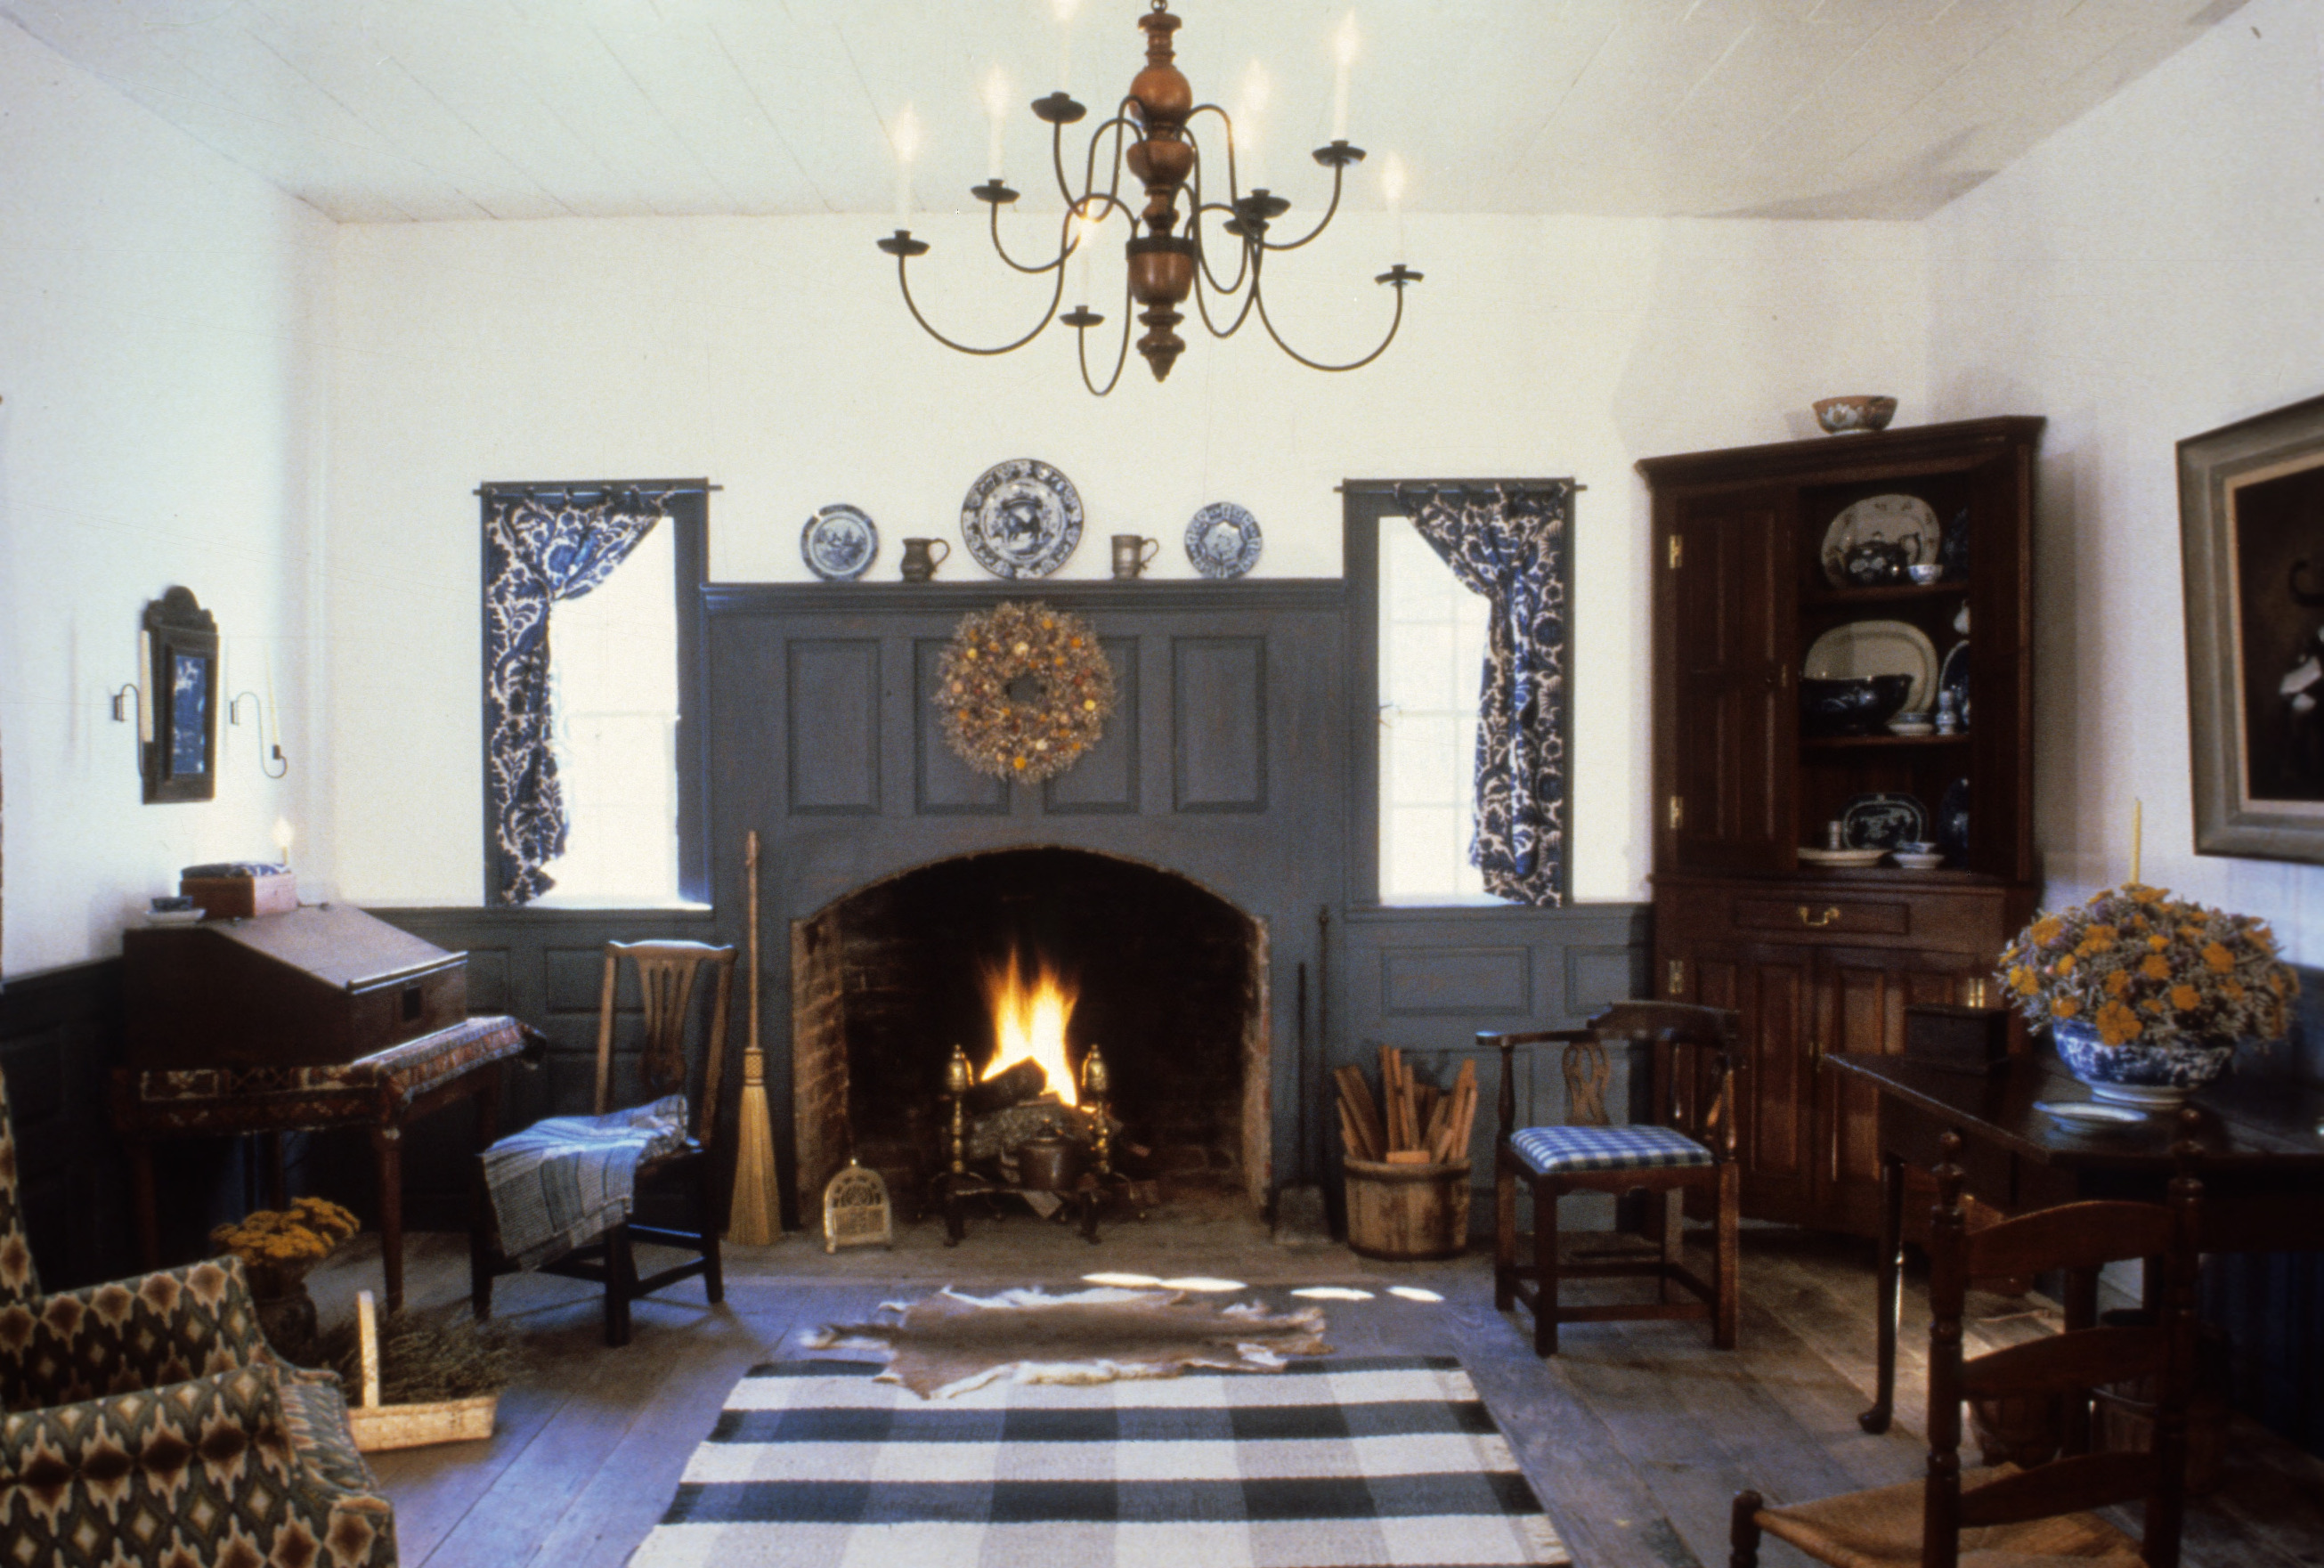 Interior View With Fireplace Old Town Plantation House Edgecombe